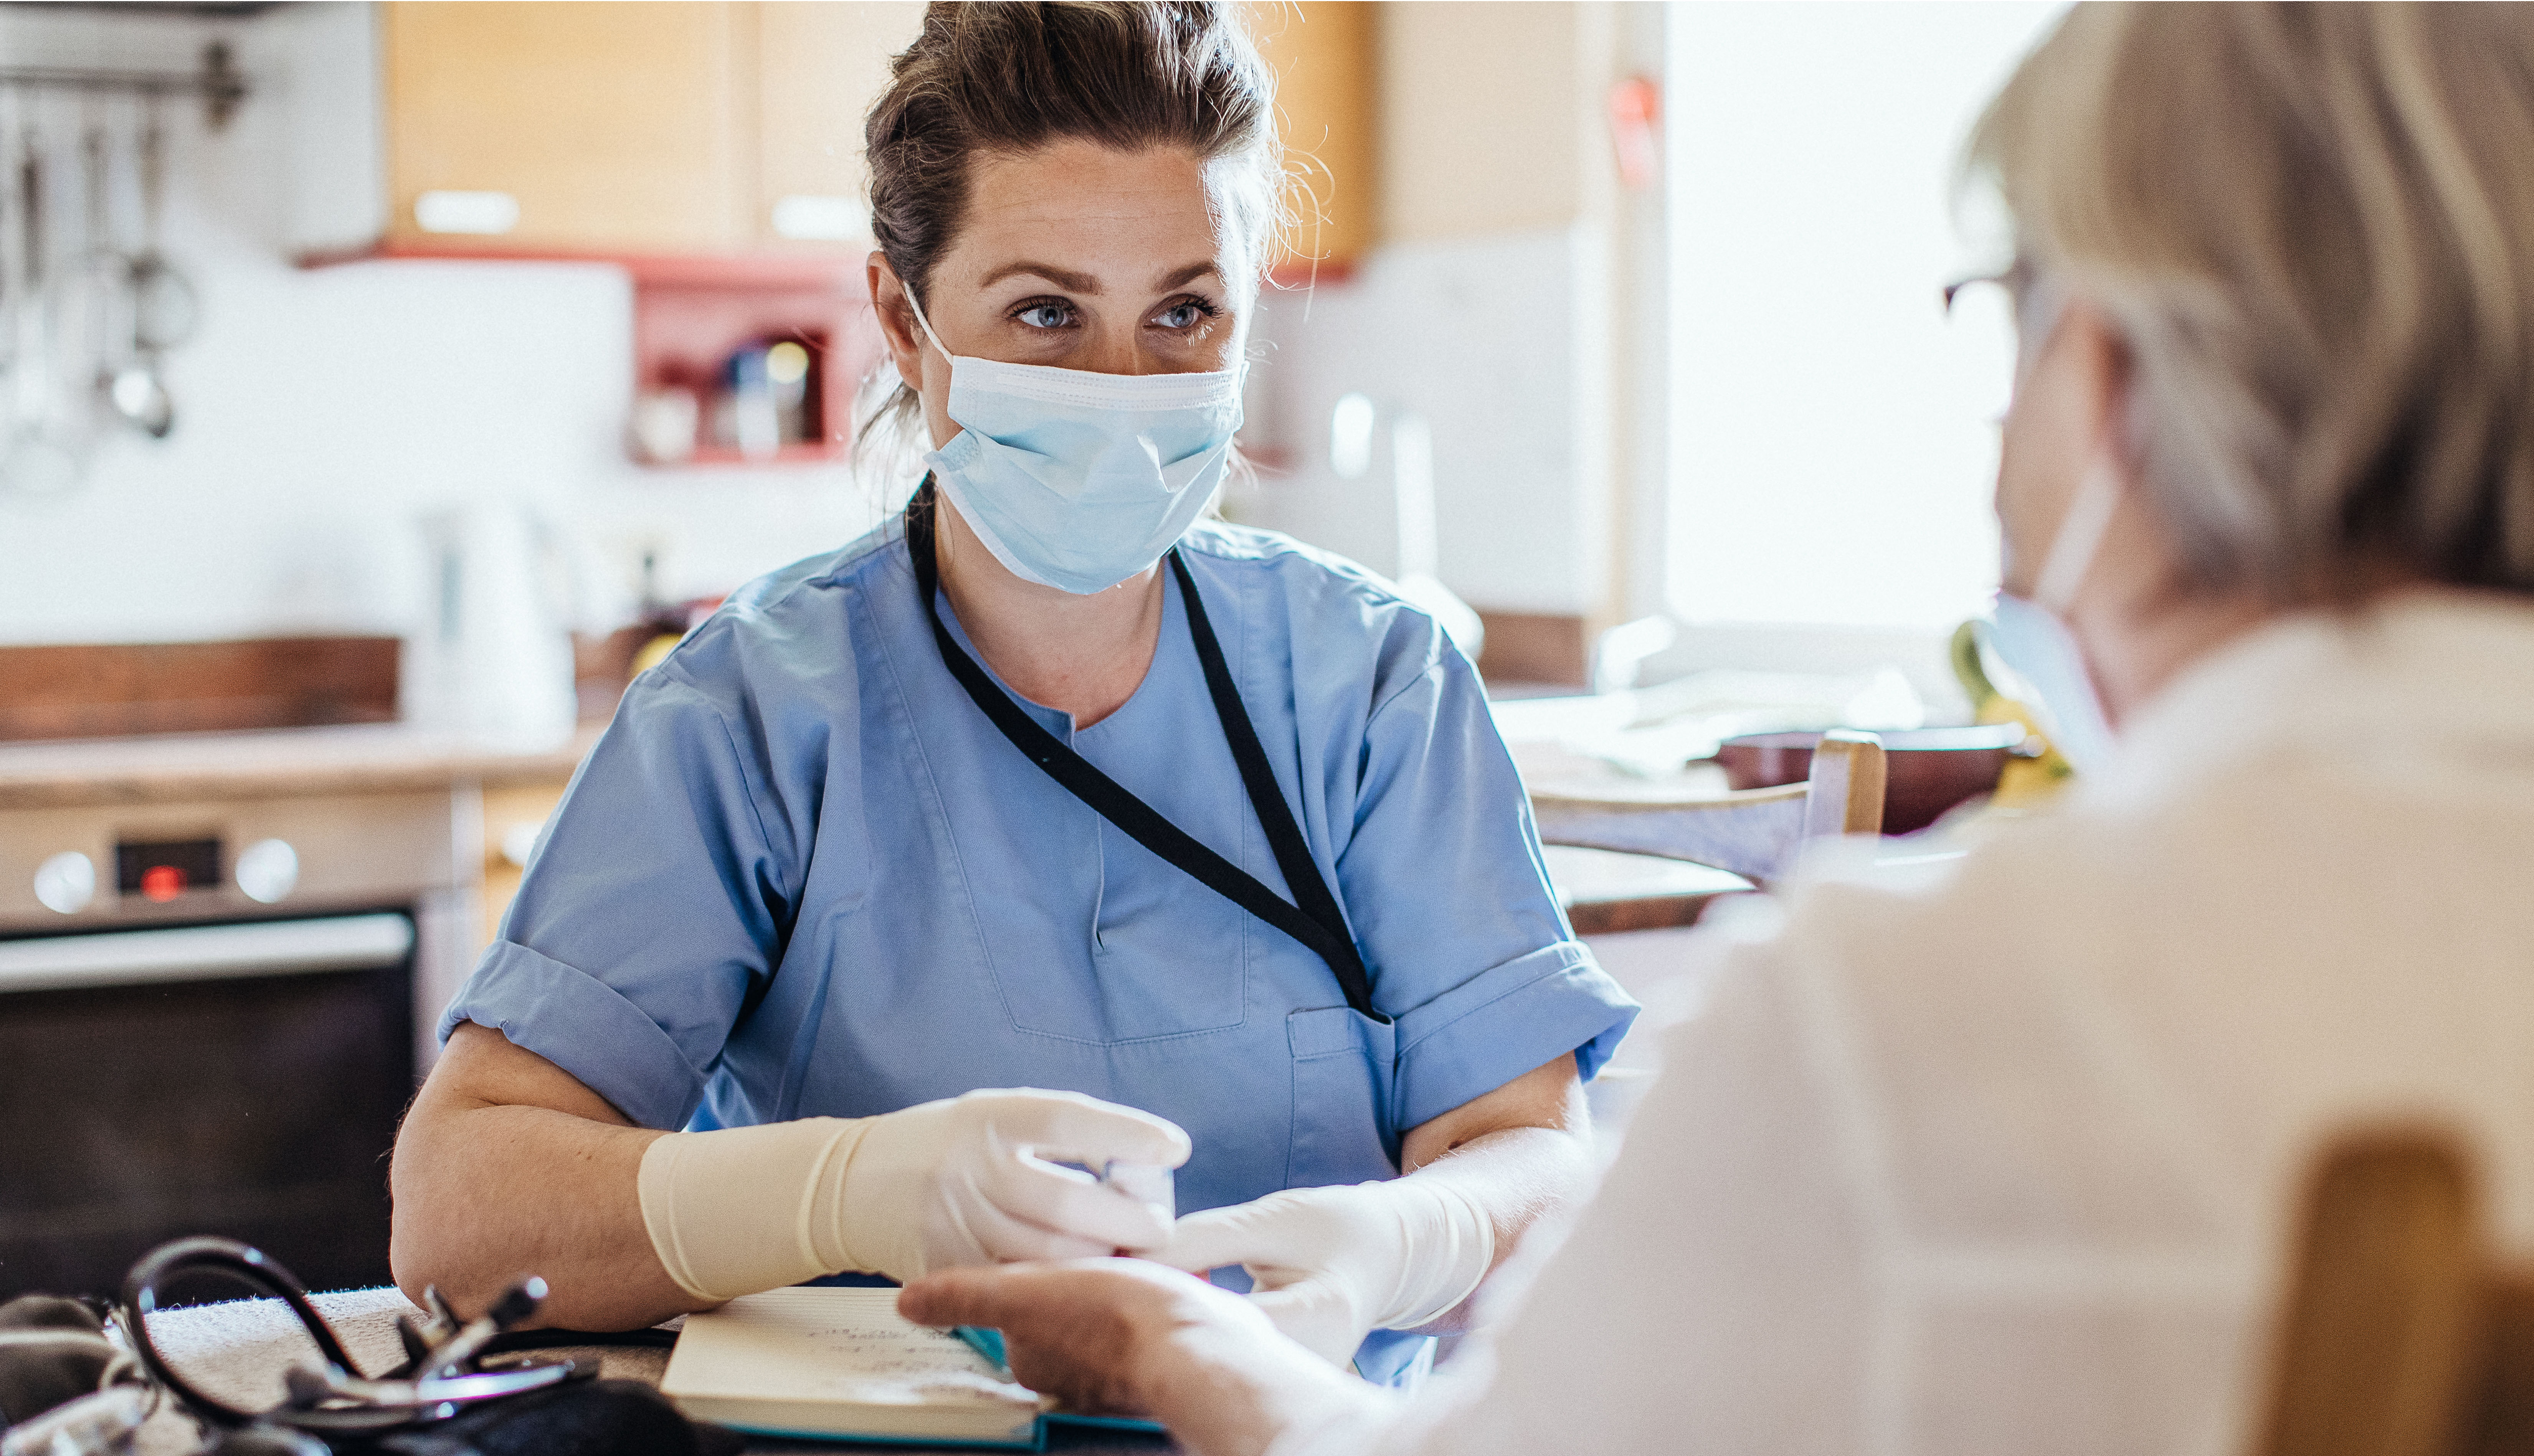 hospice worker wearing mask and gloves taking care of older patient wearing gloves